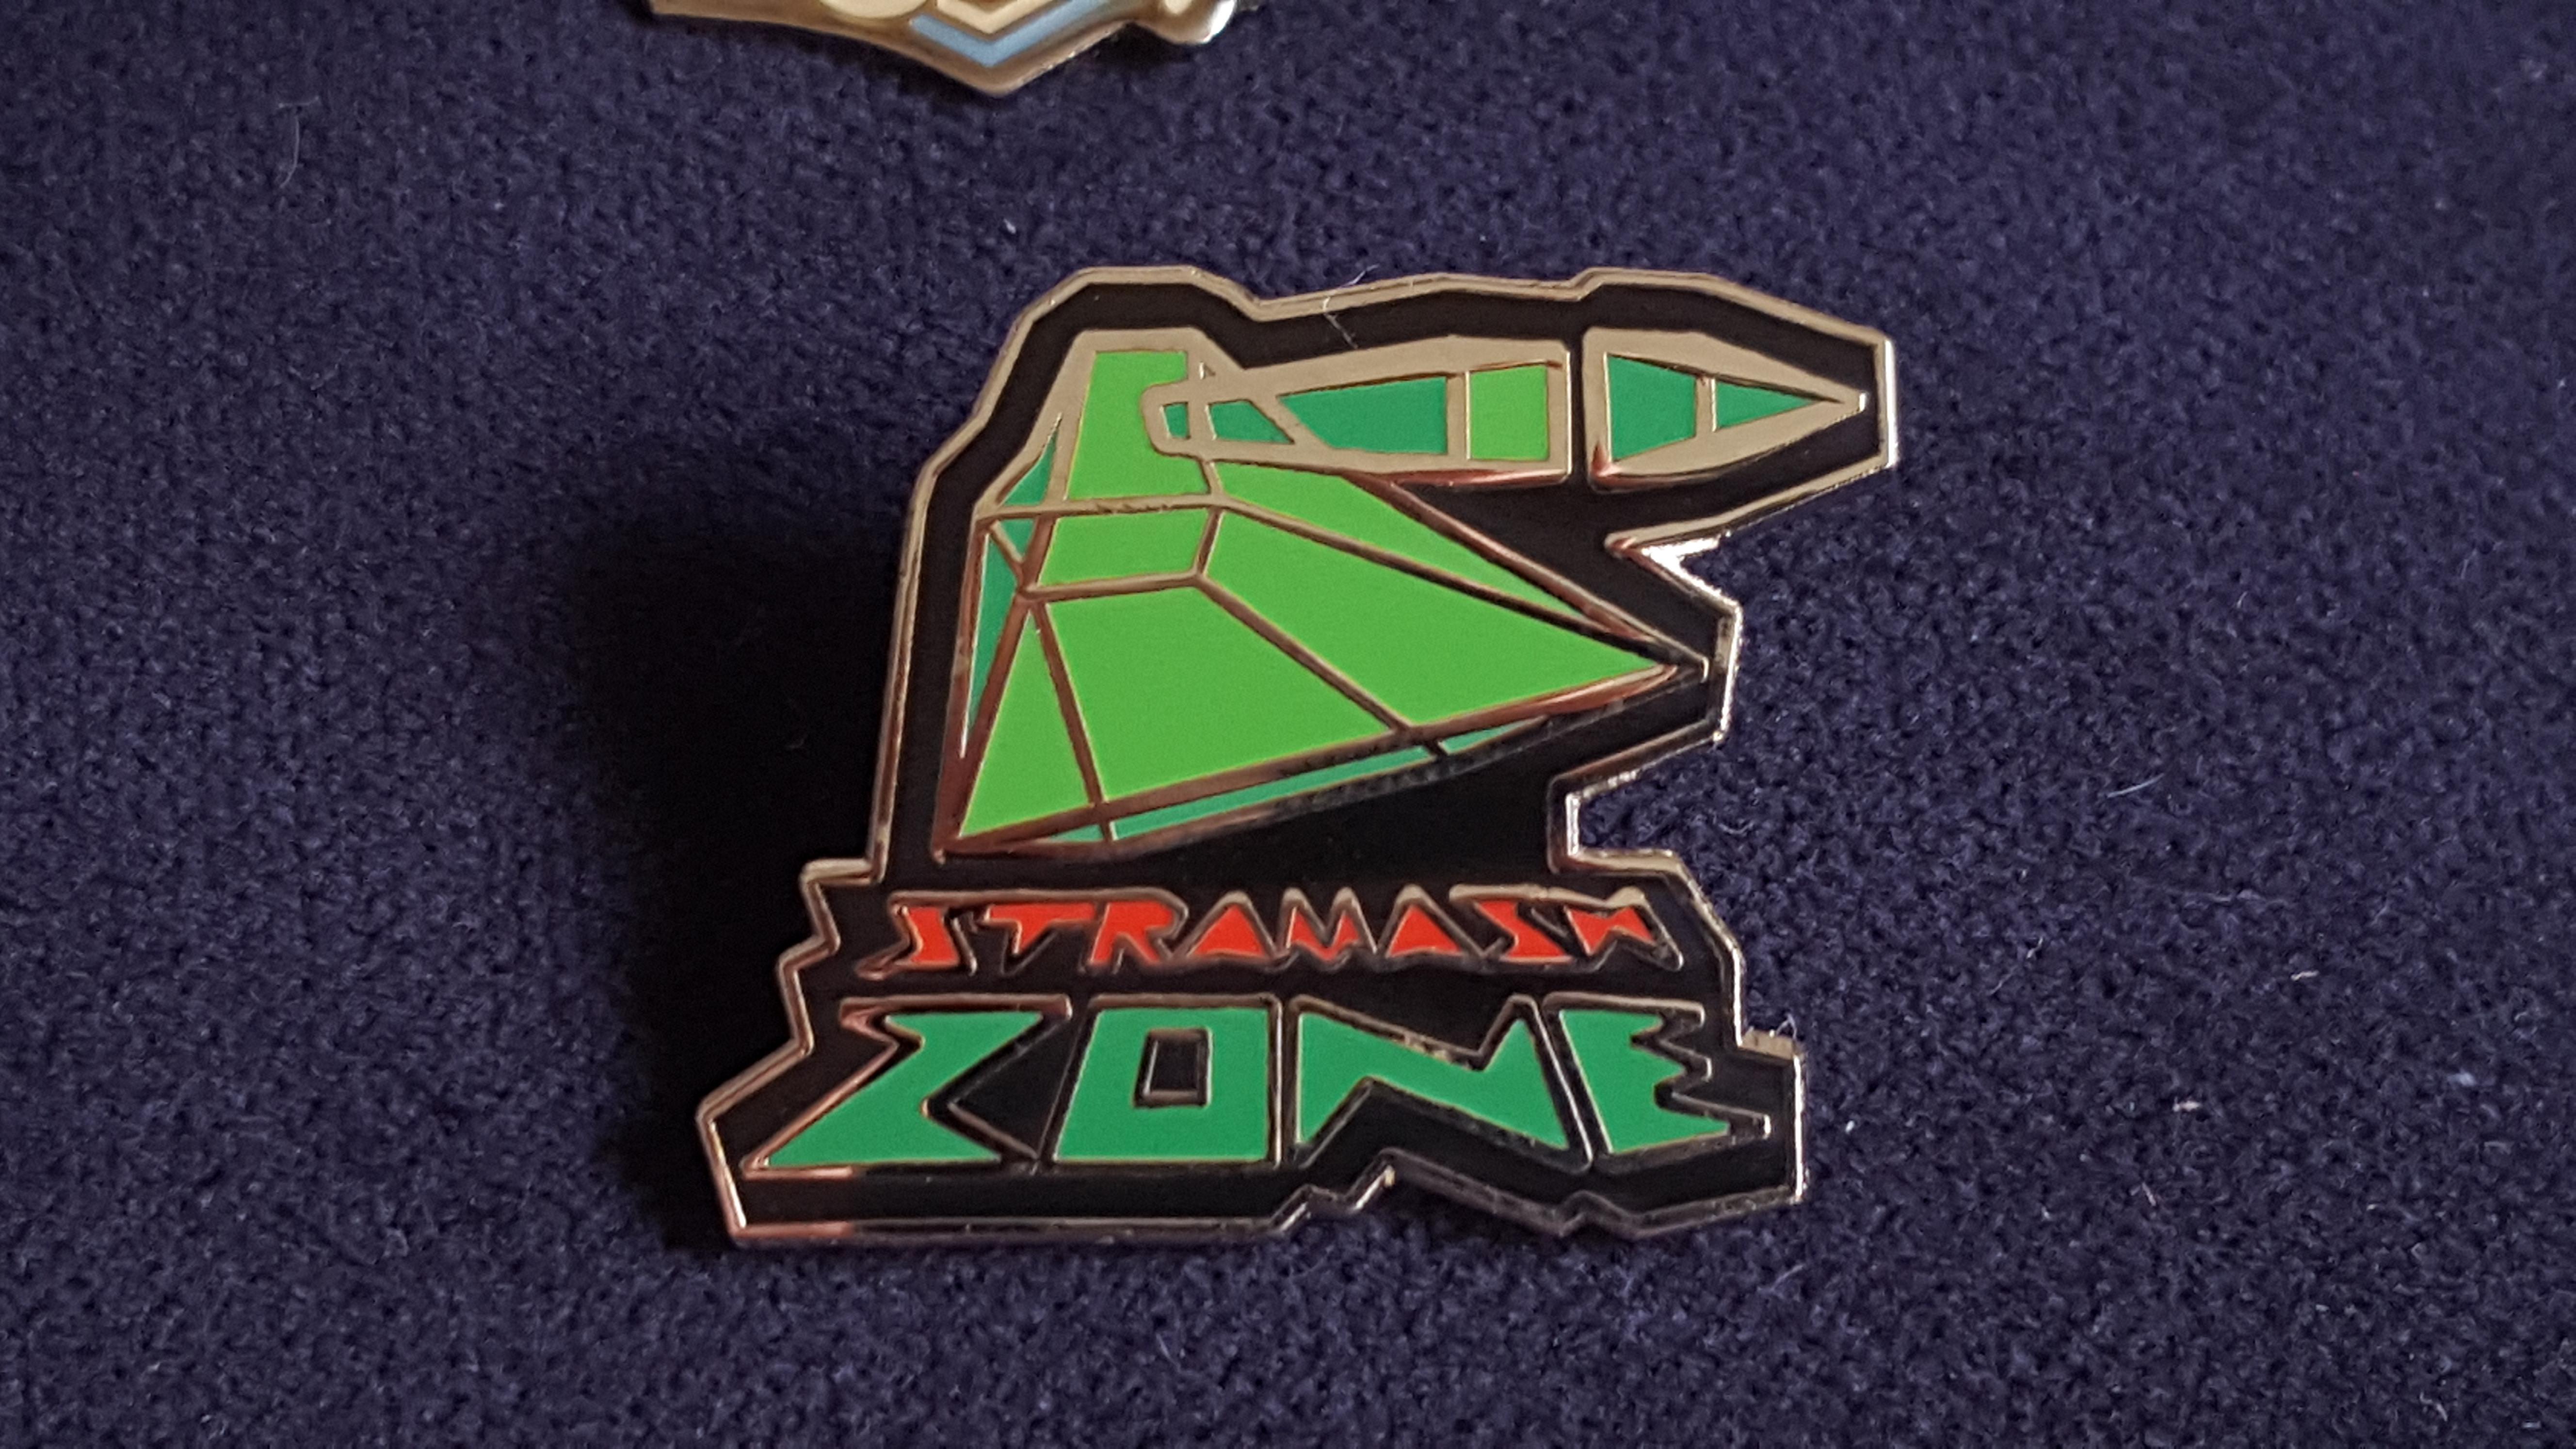 Stramash Zone Collector Pin